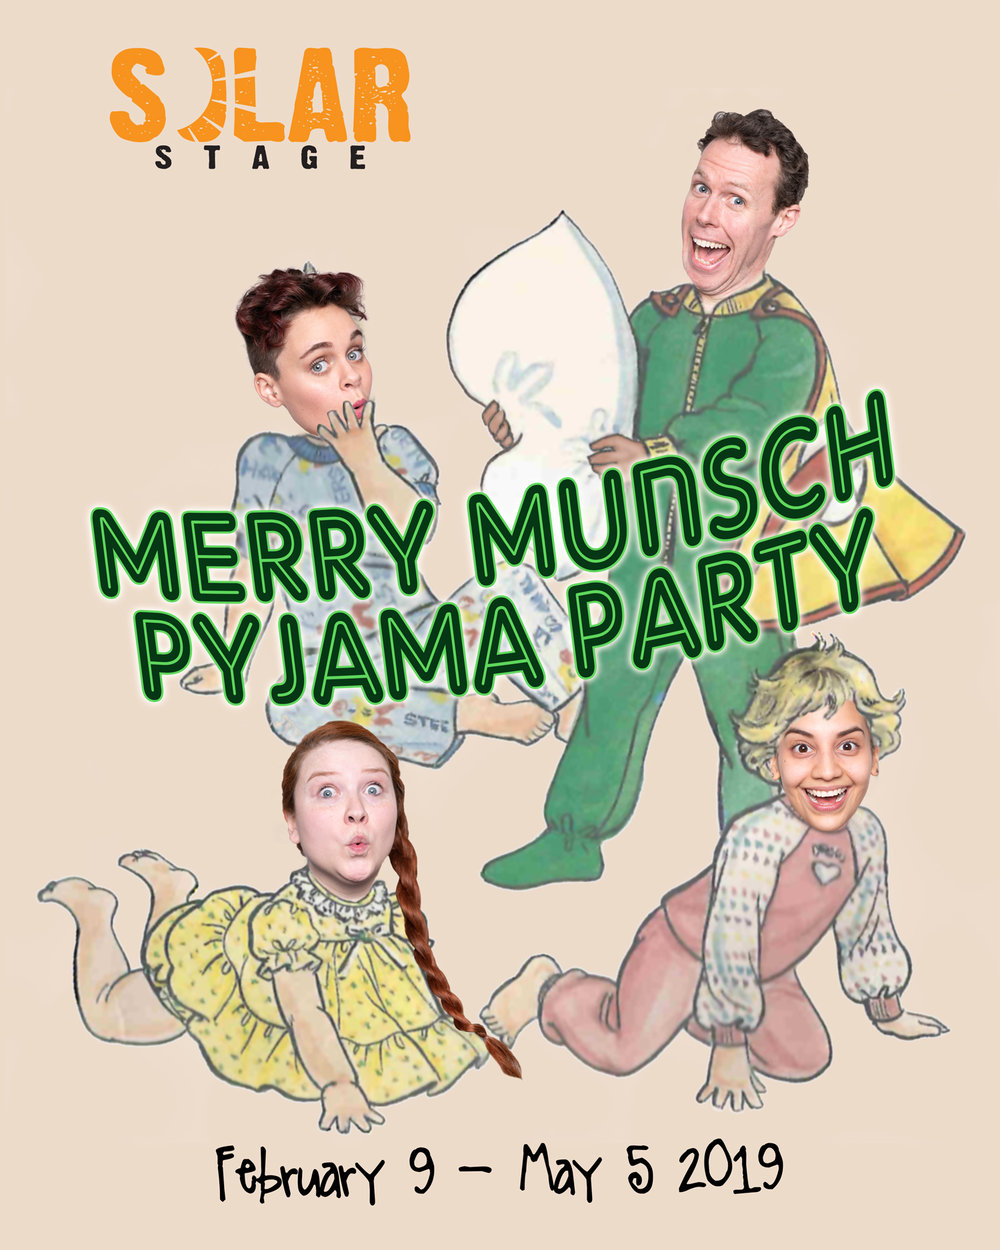 """Merry munsch pyjama party! - Now closed.  Thank you for coming!A show for all ages, and all pyjamas!Based on """"Get Out of Bed!"""", """"Roar!"""", """"We Share Everything!"""", """"No Clean Clothes"""", and """"Pyjama Day!"""" by Robert MunschRecommended for ages 3 and upAudience is encouraged to dress in their pyjamas!"""